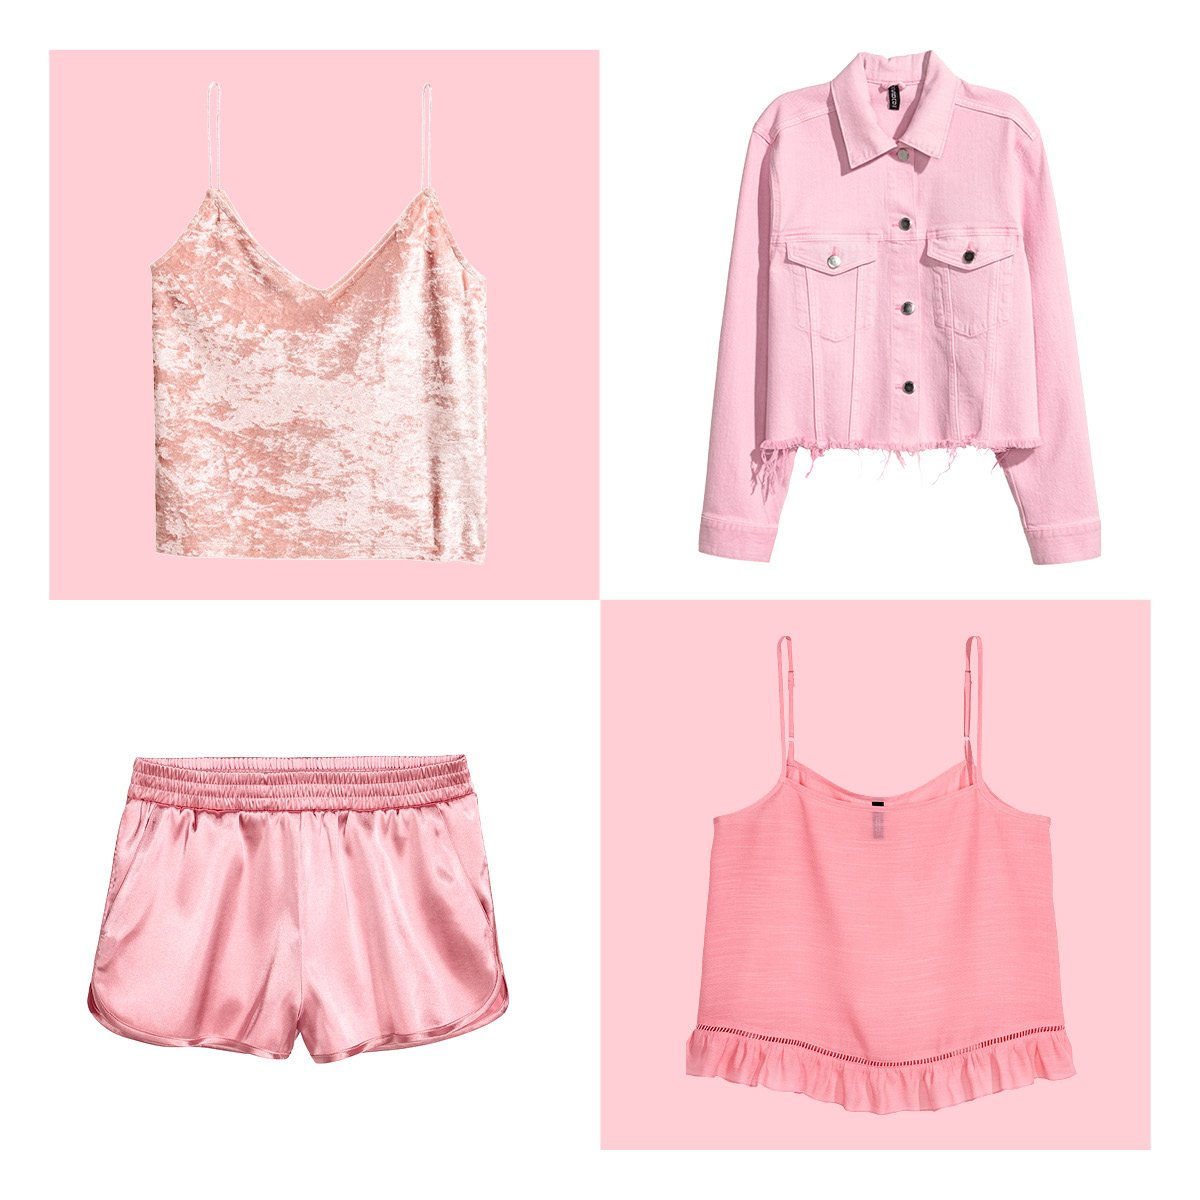 You&#39;re not fully dressed until you wear pink!   http:// hm.info/18pt1  &nbsp;    #HM  #NationalPinkDay<br>http://pic.twitter.com/zL6yKvjFnX